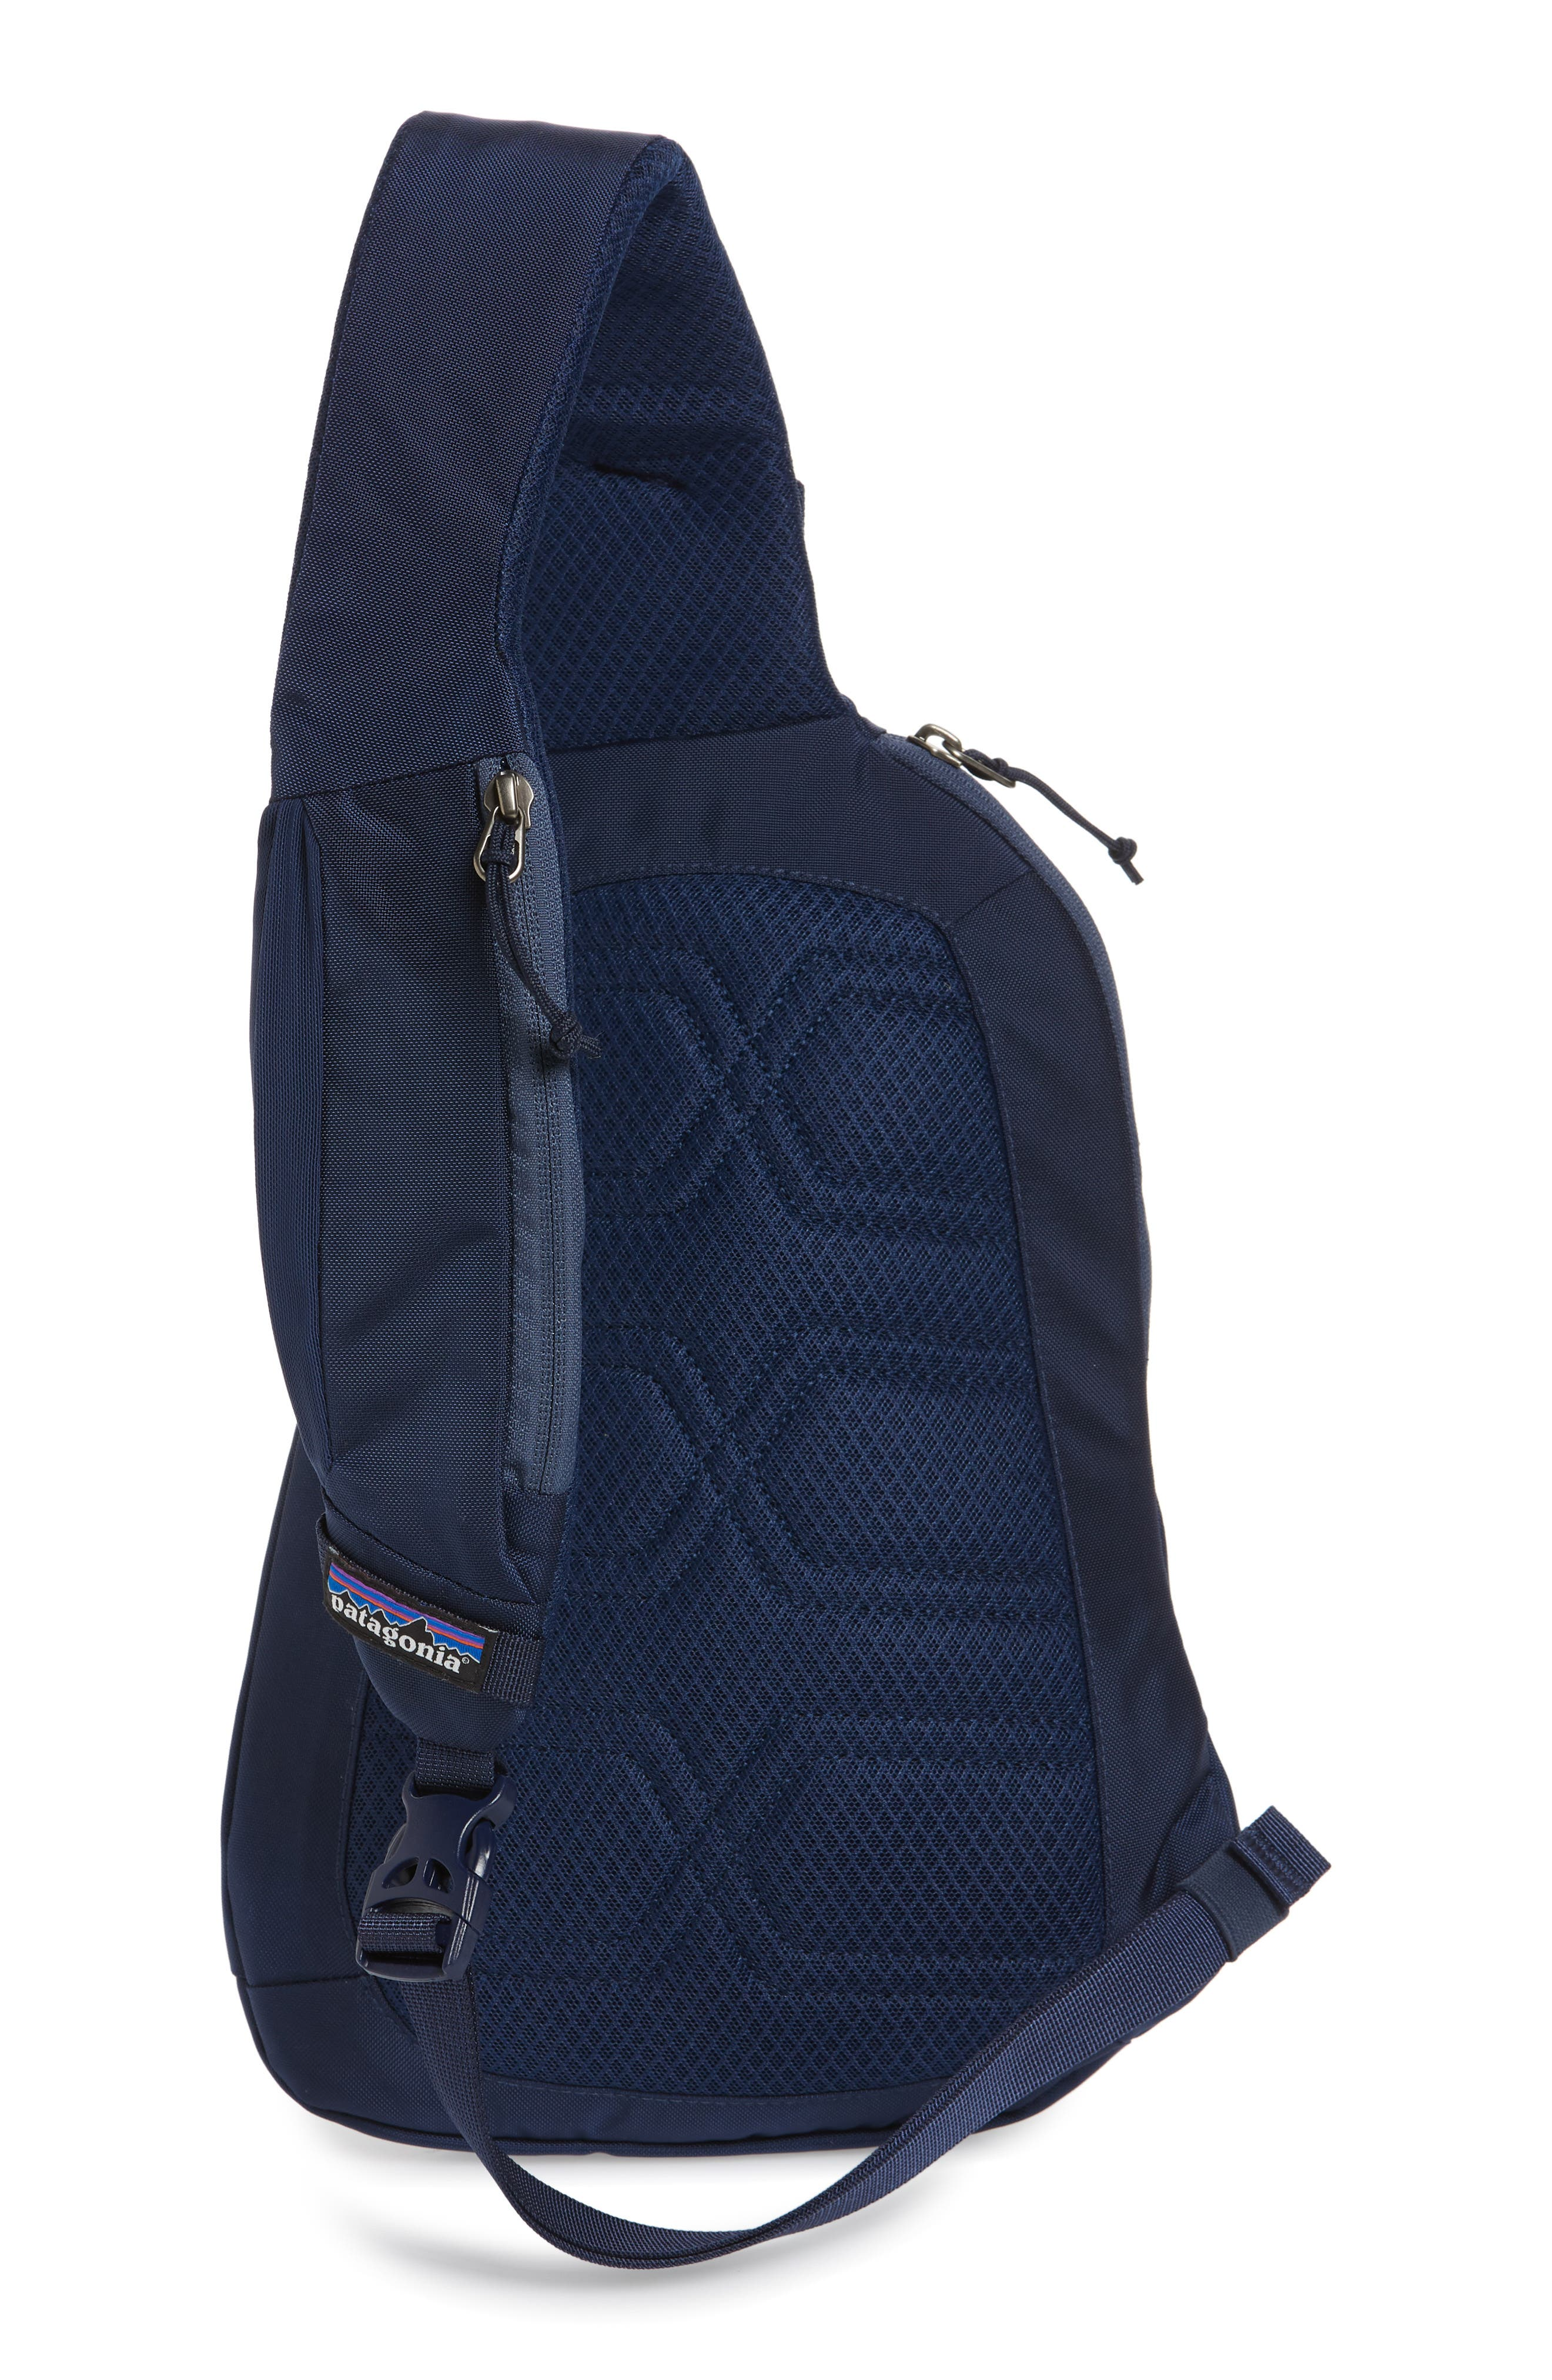 PATAGONIA, Atom 8L Sling Backpack, Alternate thumbnail 4, color, CLASSIC NAVY W/ NAVY